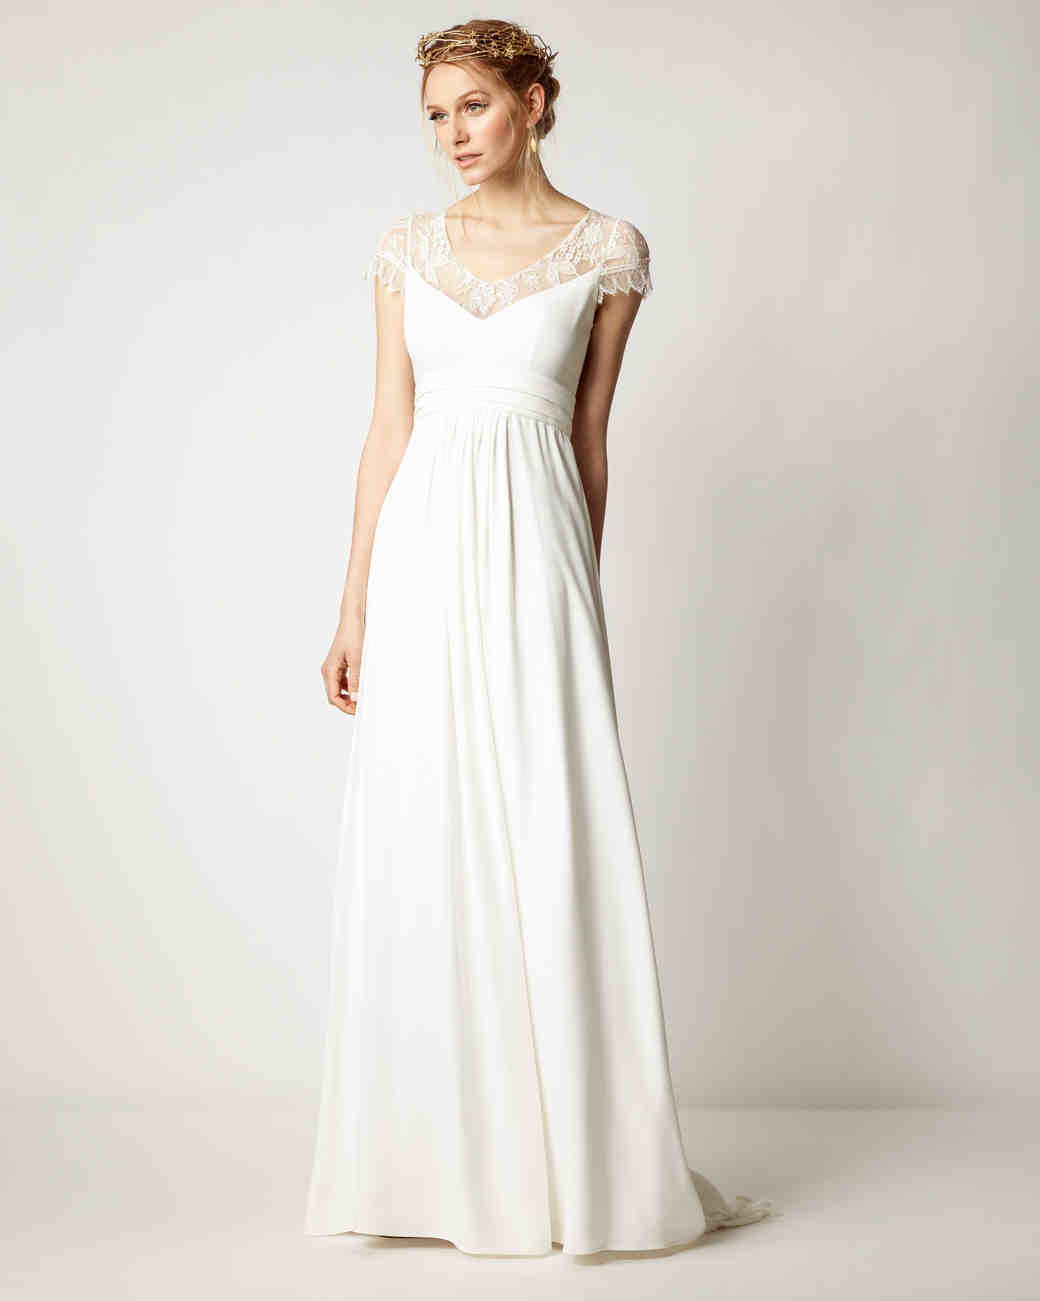 Vows Wedding Dresses 81 Cute Rembo Styling Fall Wedding